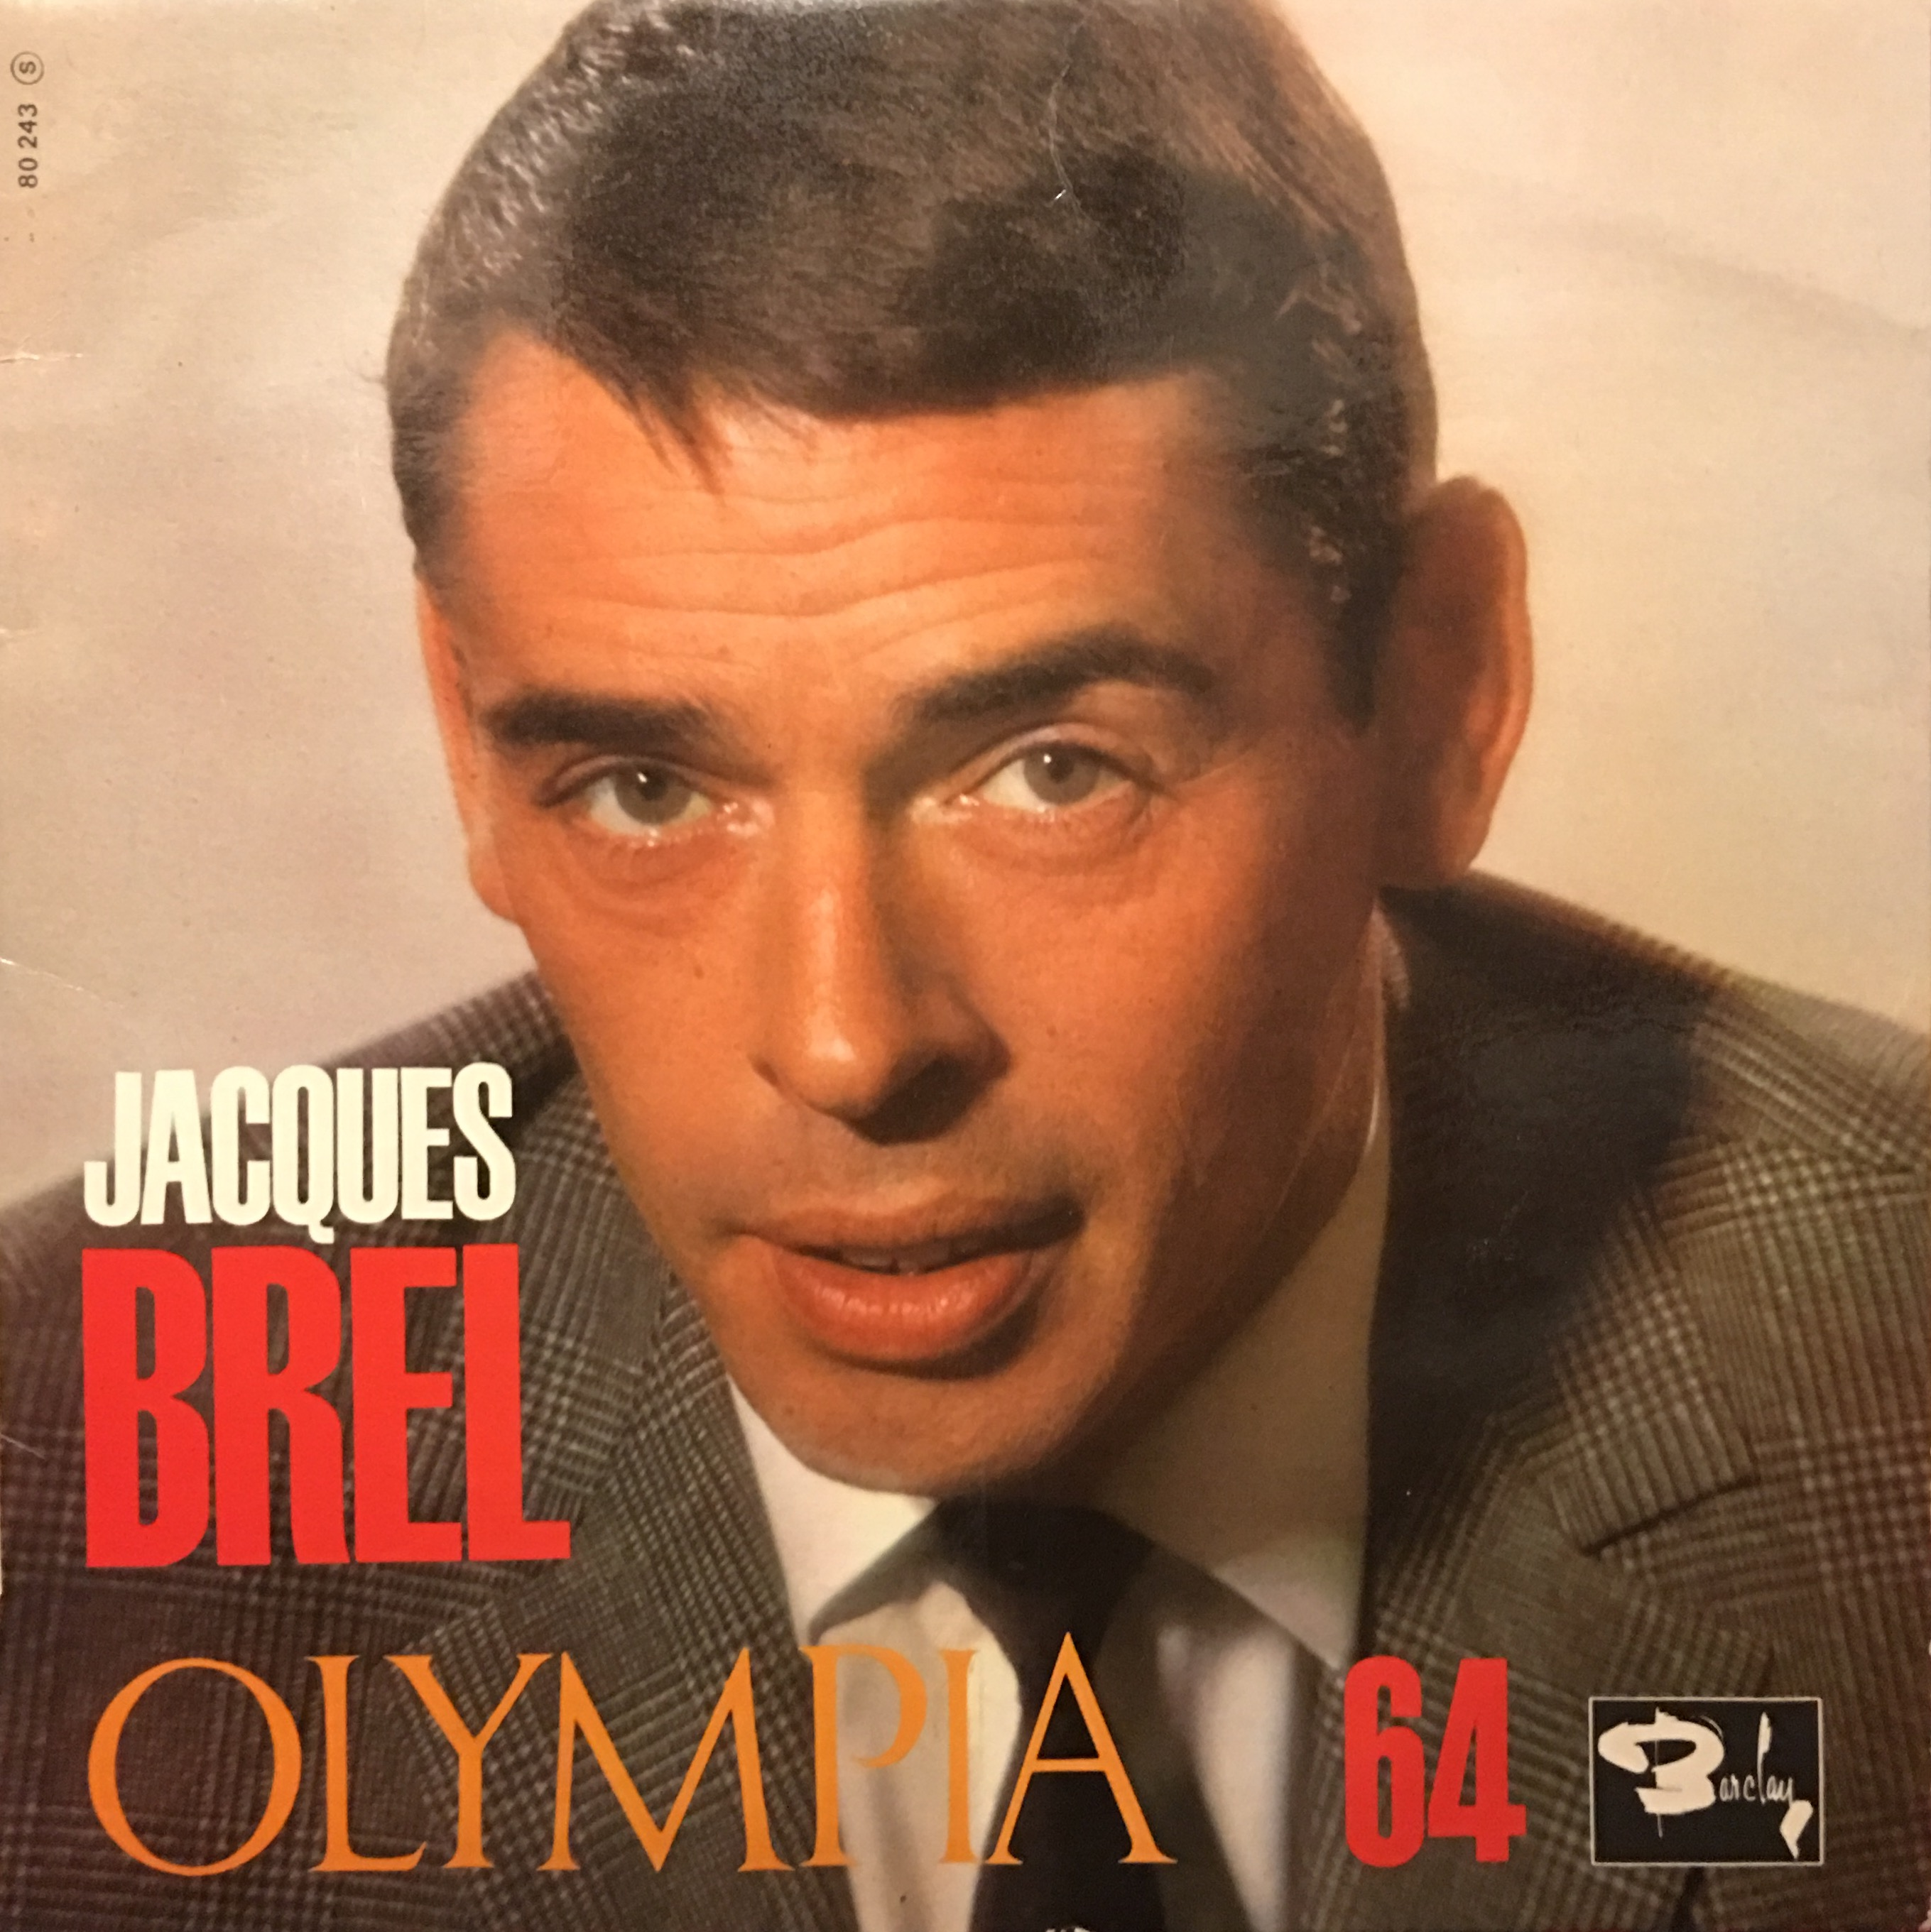 Jacques Brel, Olympia 1964